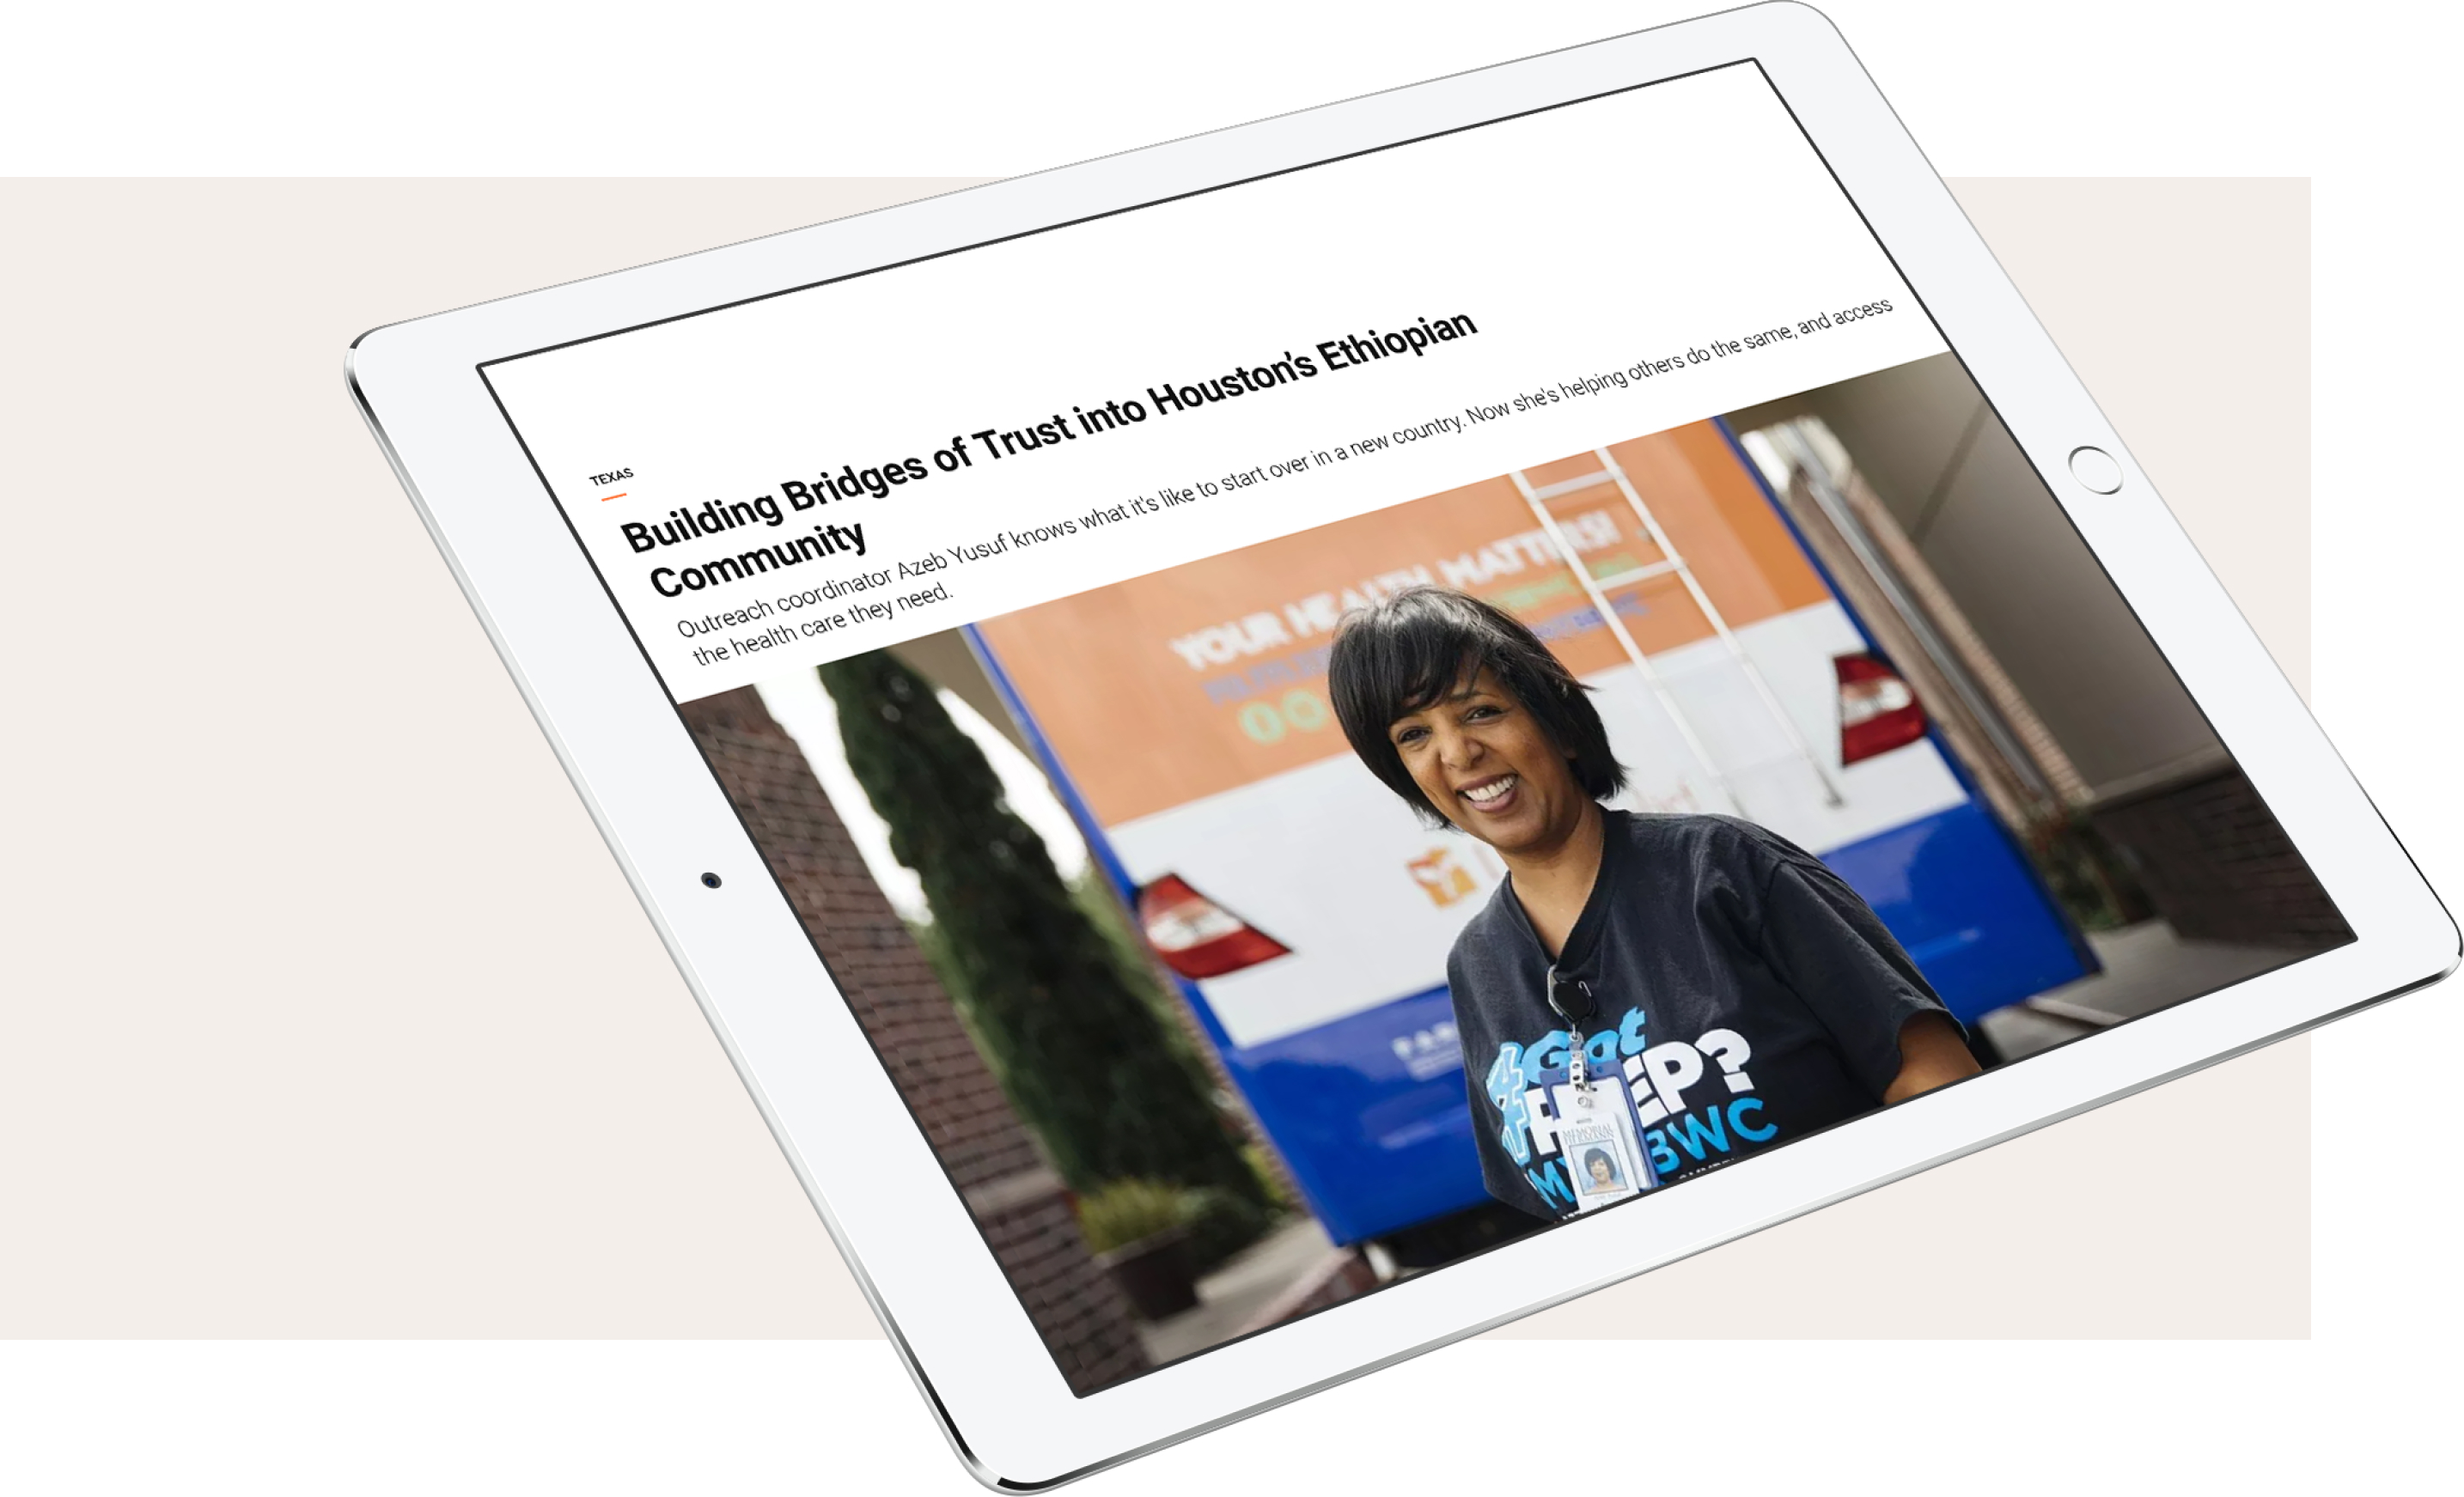 A headline and image displayed on a tablet screen